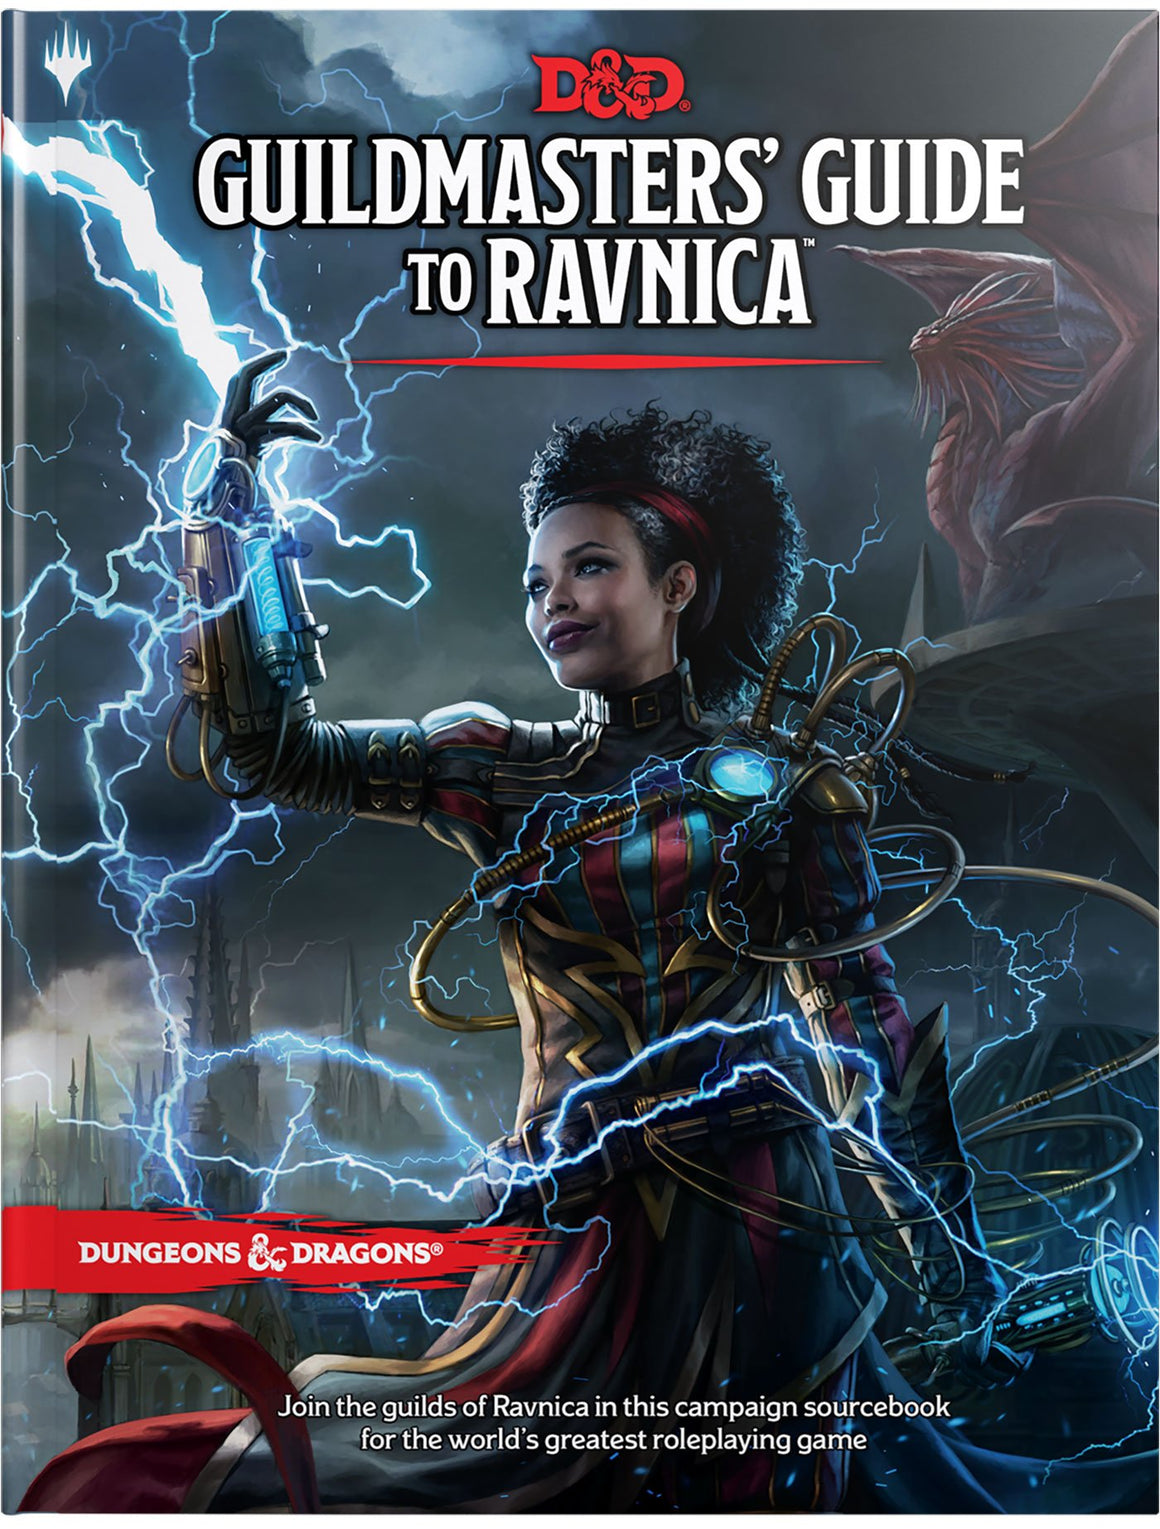 Dungeons & Dragons Guildmaster's Guide to Ravnica